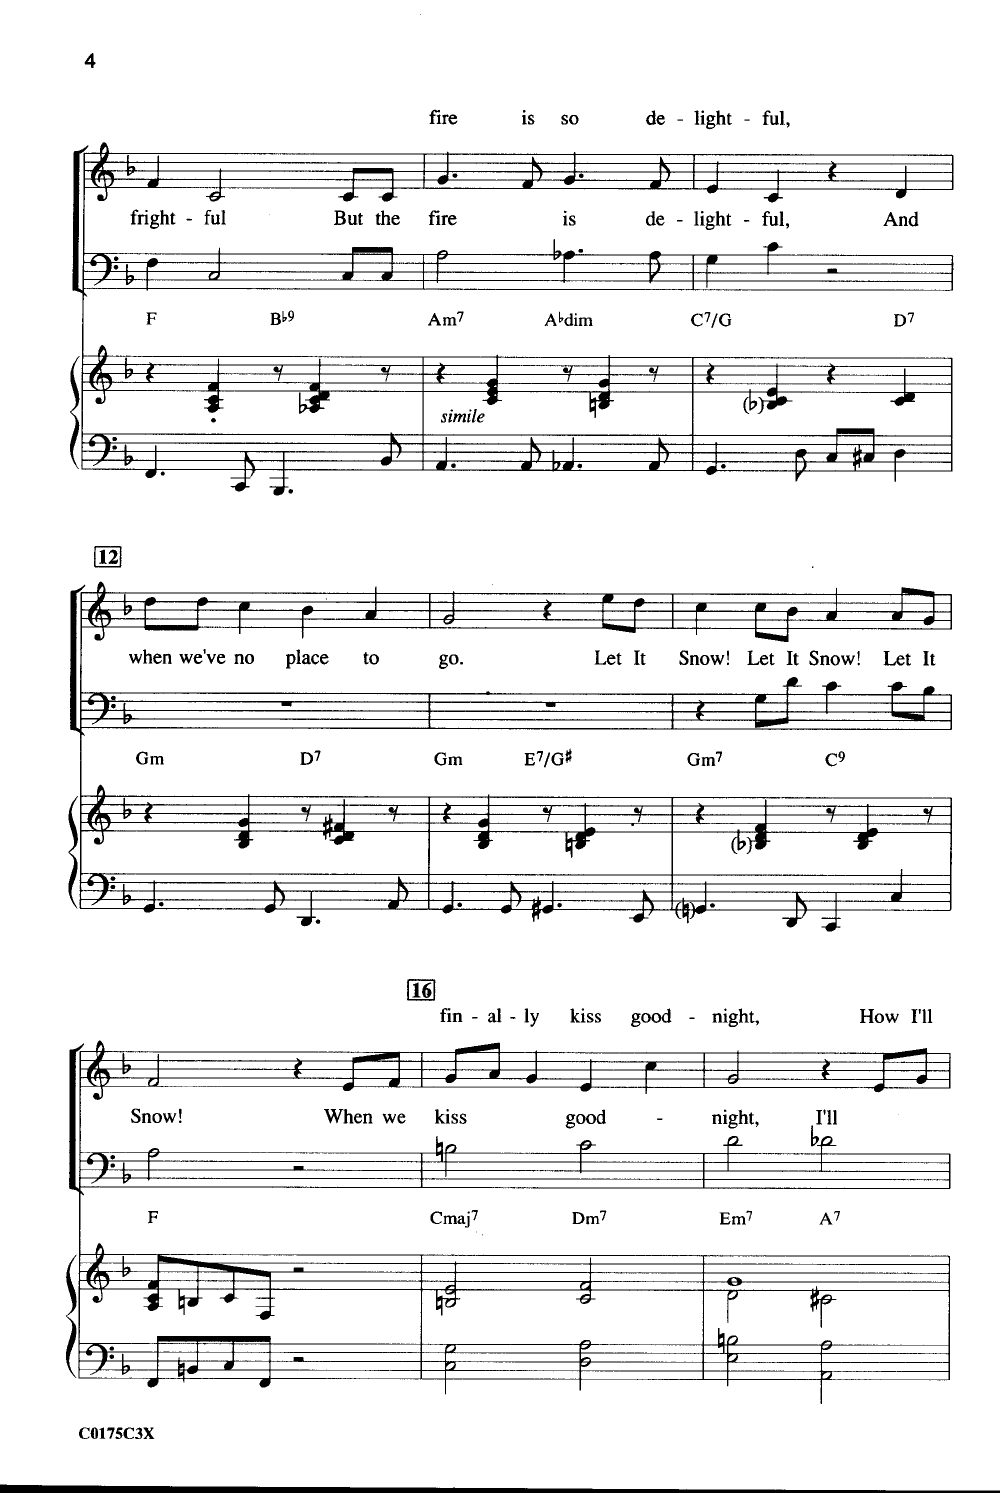 have yourself a merry little christmas thumbnail have yourself a merry little christmas thumbnail - Have Yourself A Merry Little Christmas Piano Sheet Music